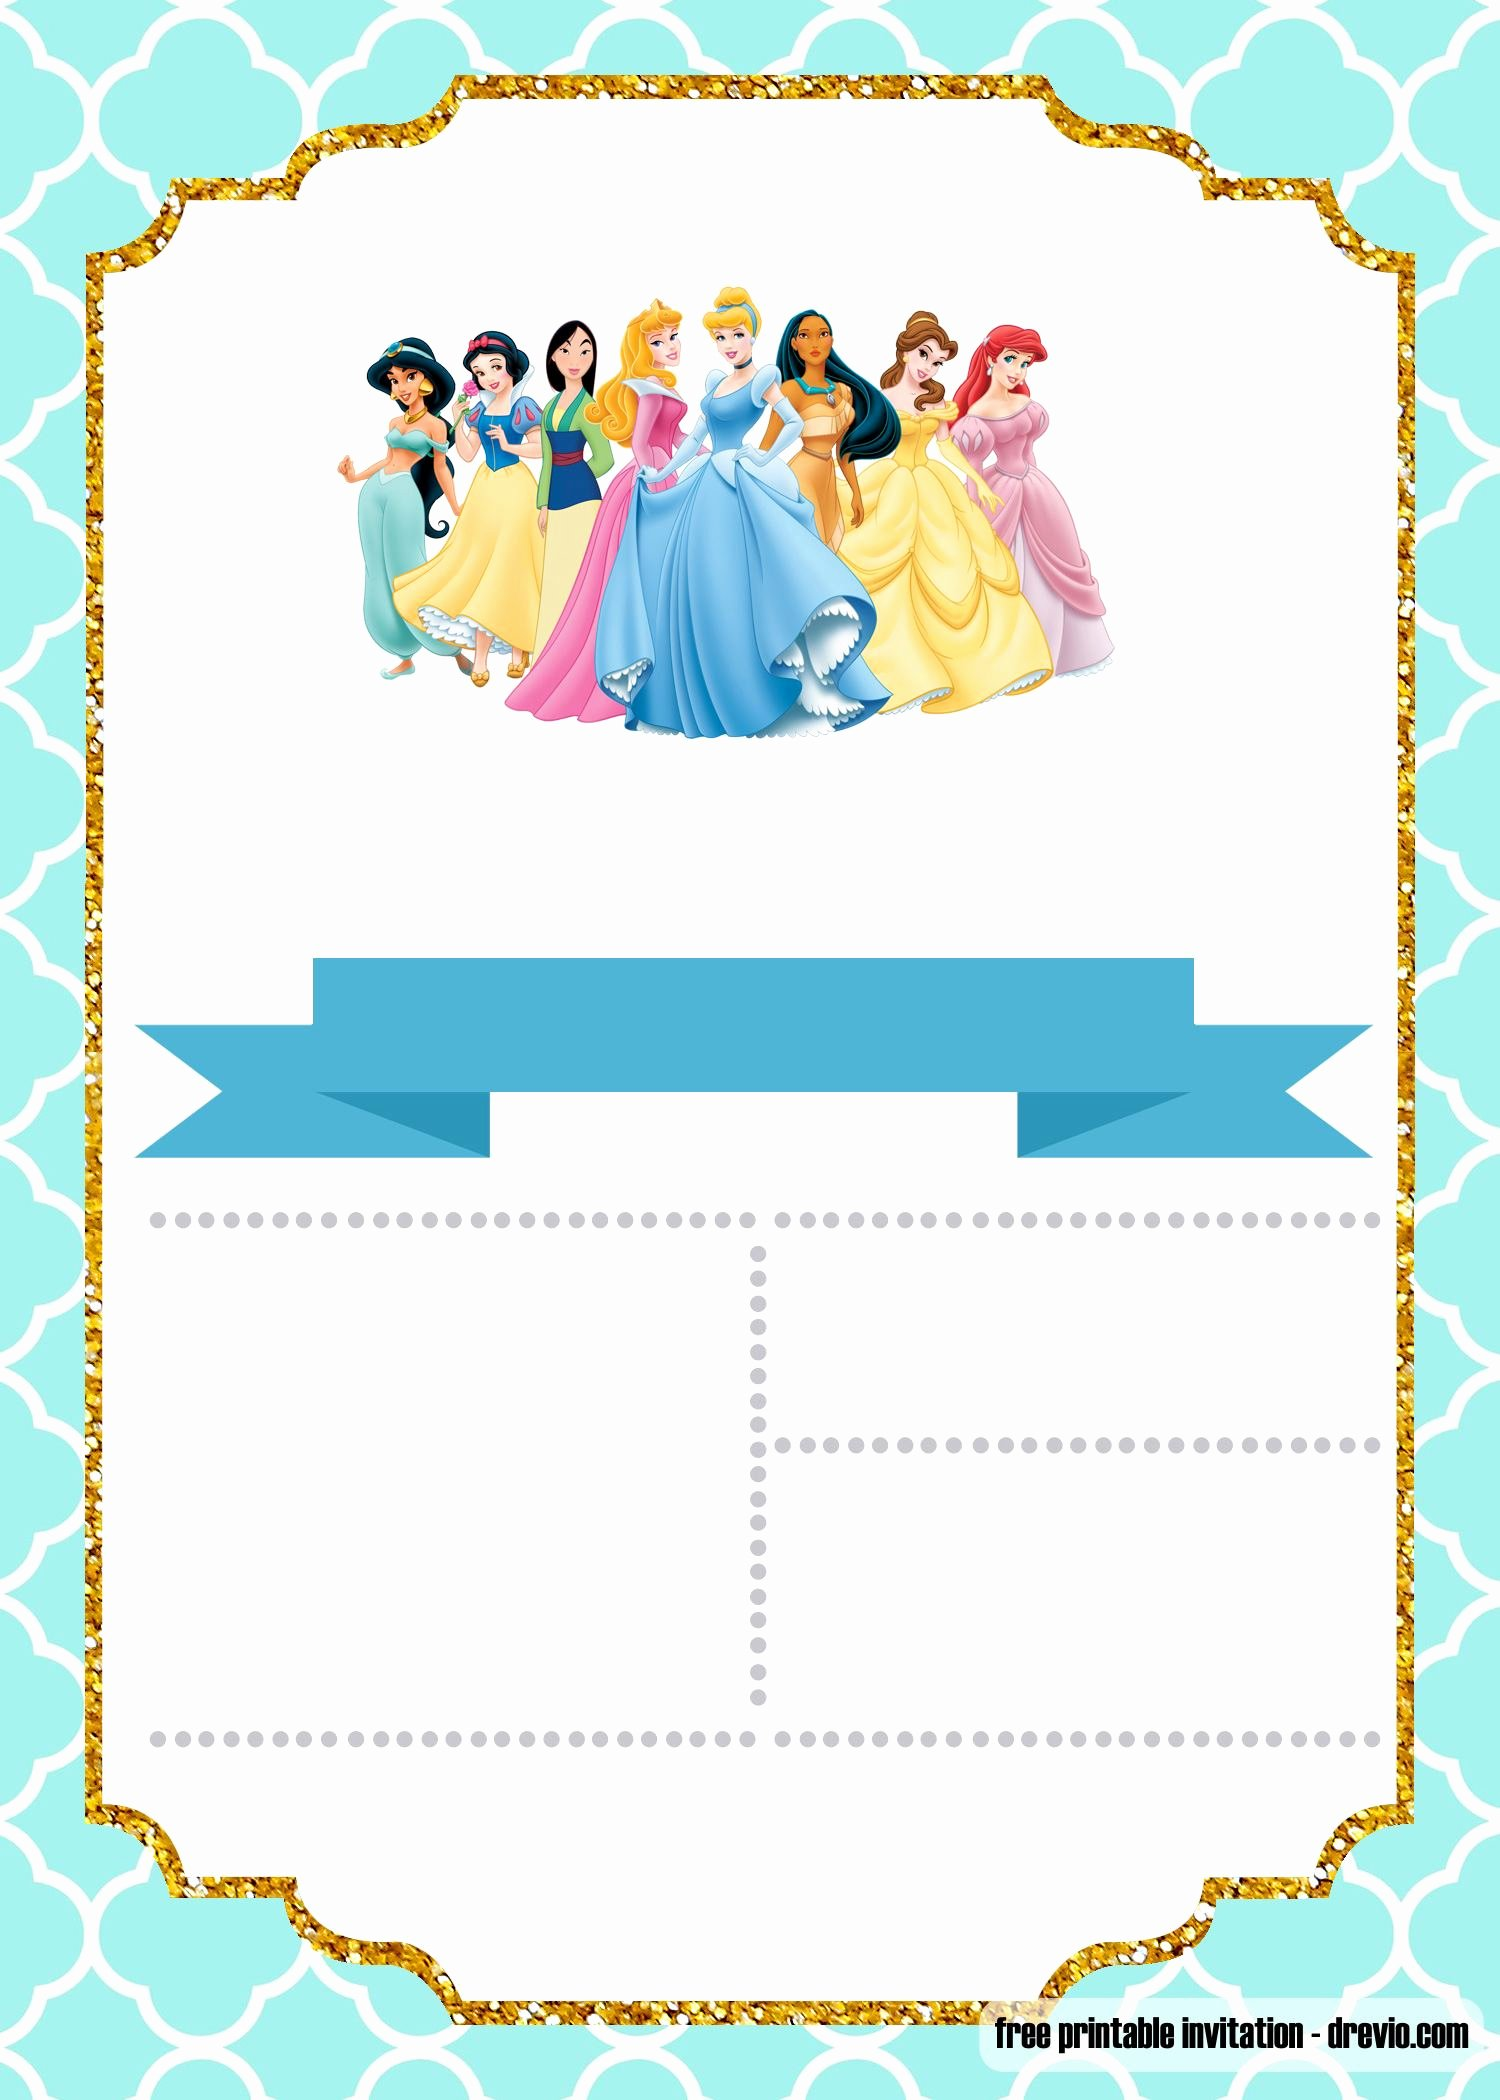 Disney Princess Invitation Templates Free Best Of Free Disney Princess Invitation Template for Your Little